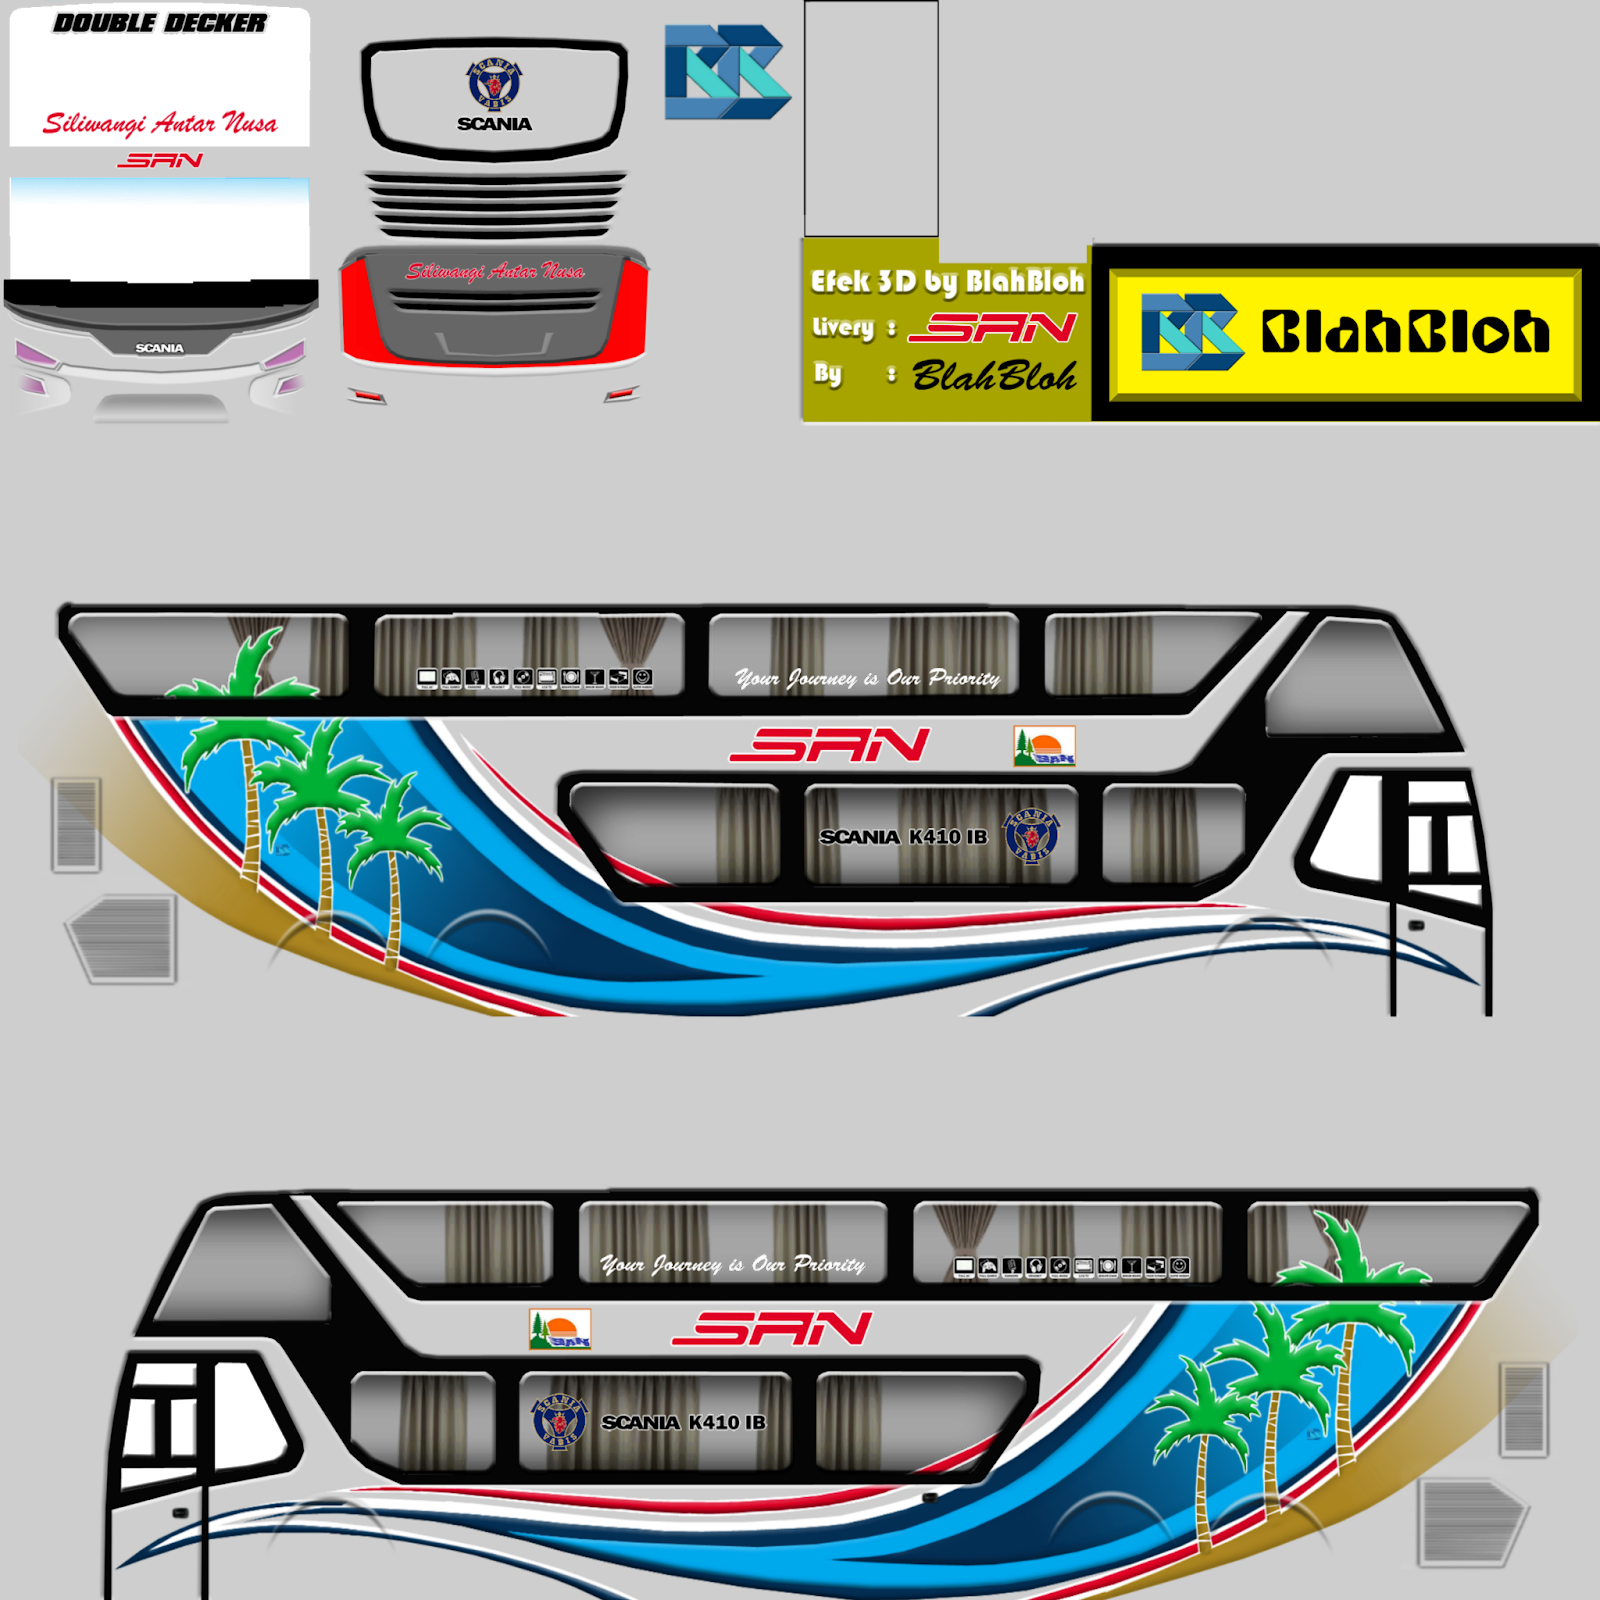 Download Livery Bussid Ban 1 Anti Feixista